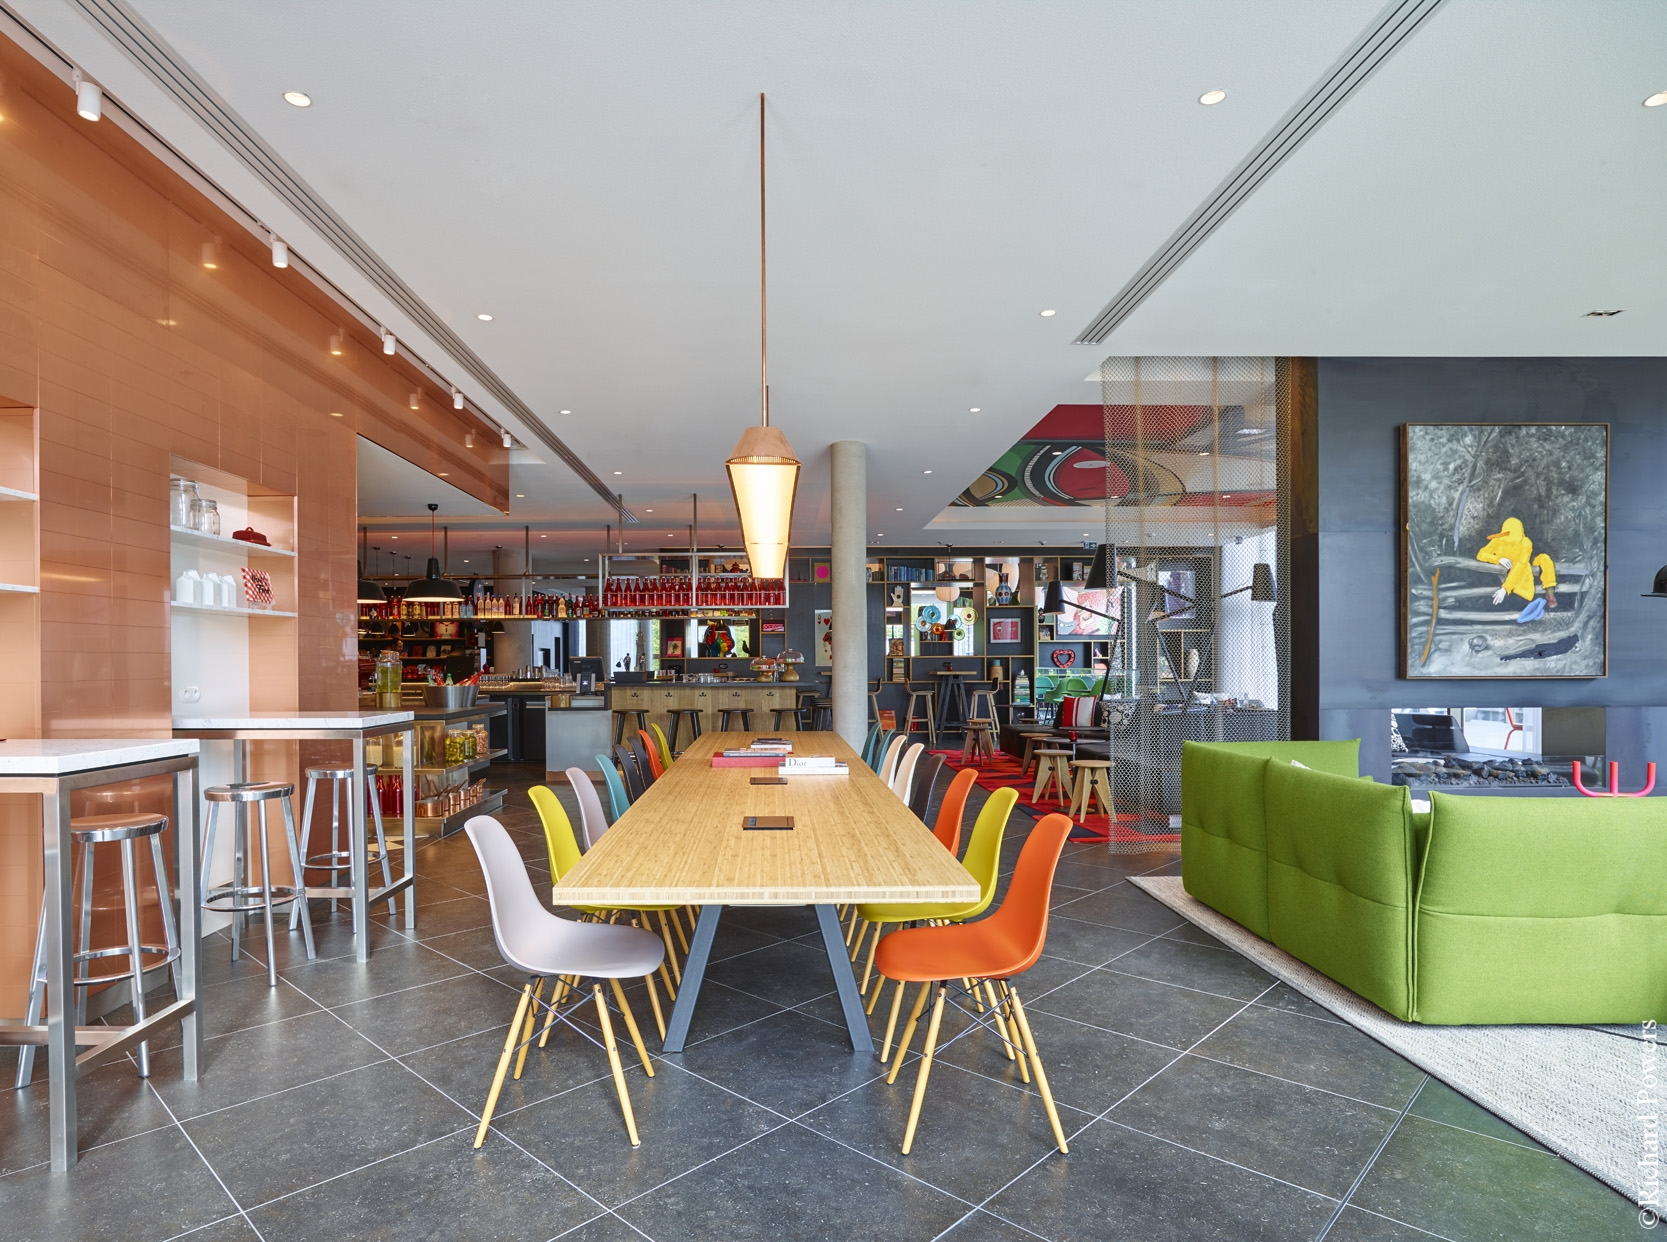 CitizenM_LaDefense_FR-0018.jpg